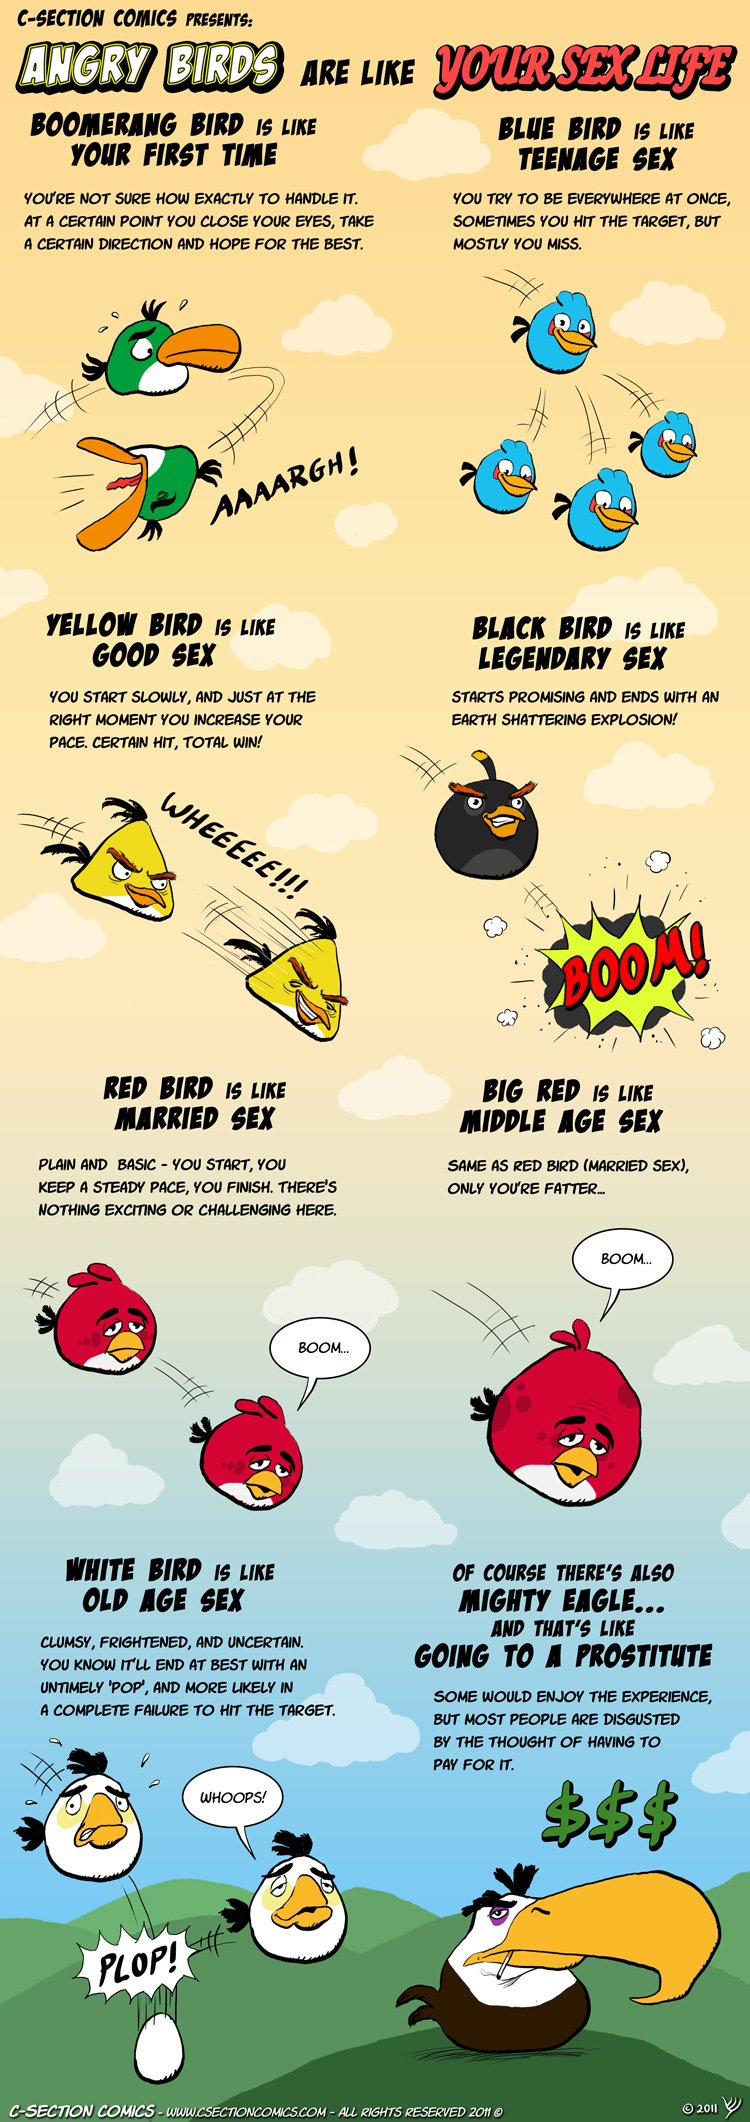 comic-2011-06-27-angry-birds-are-like-your-sex-life.jpg